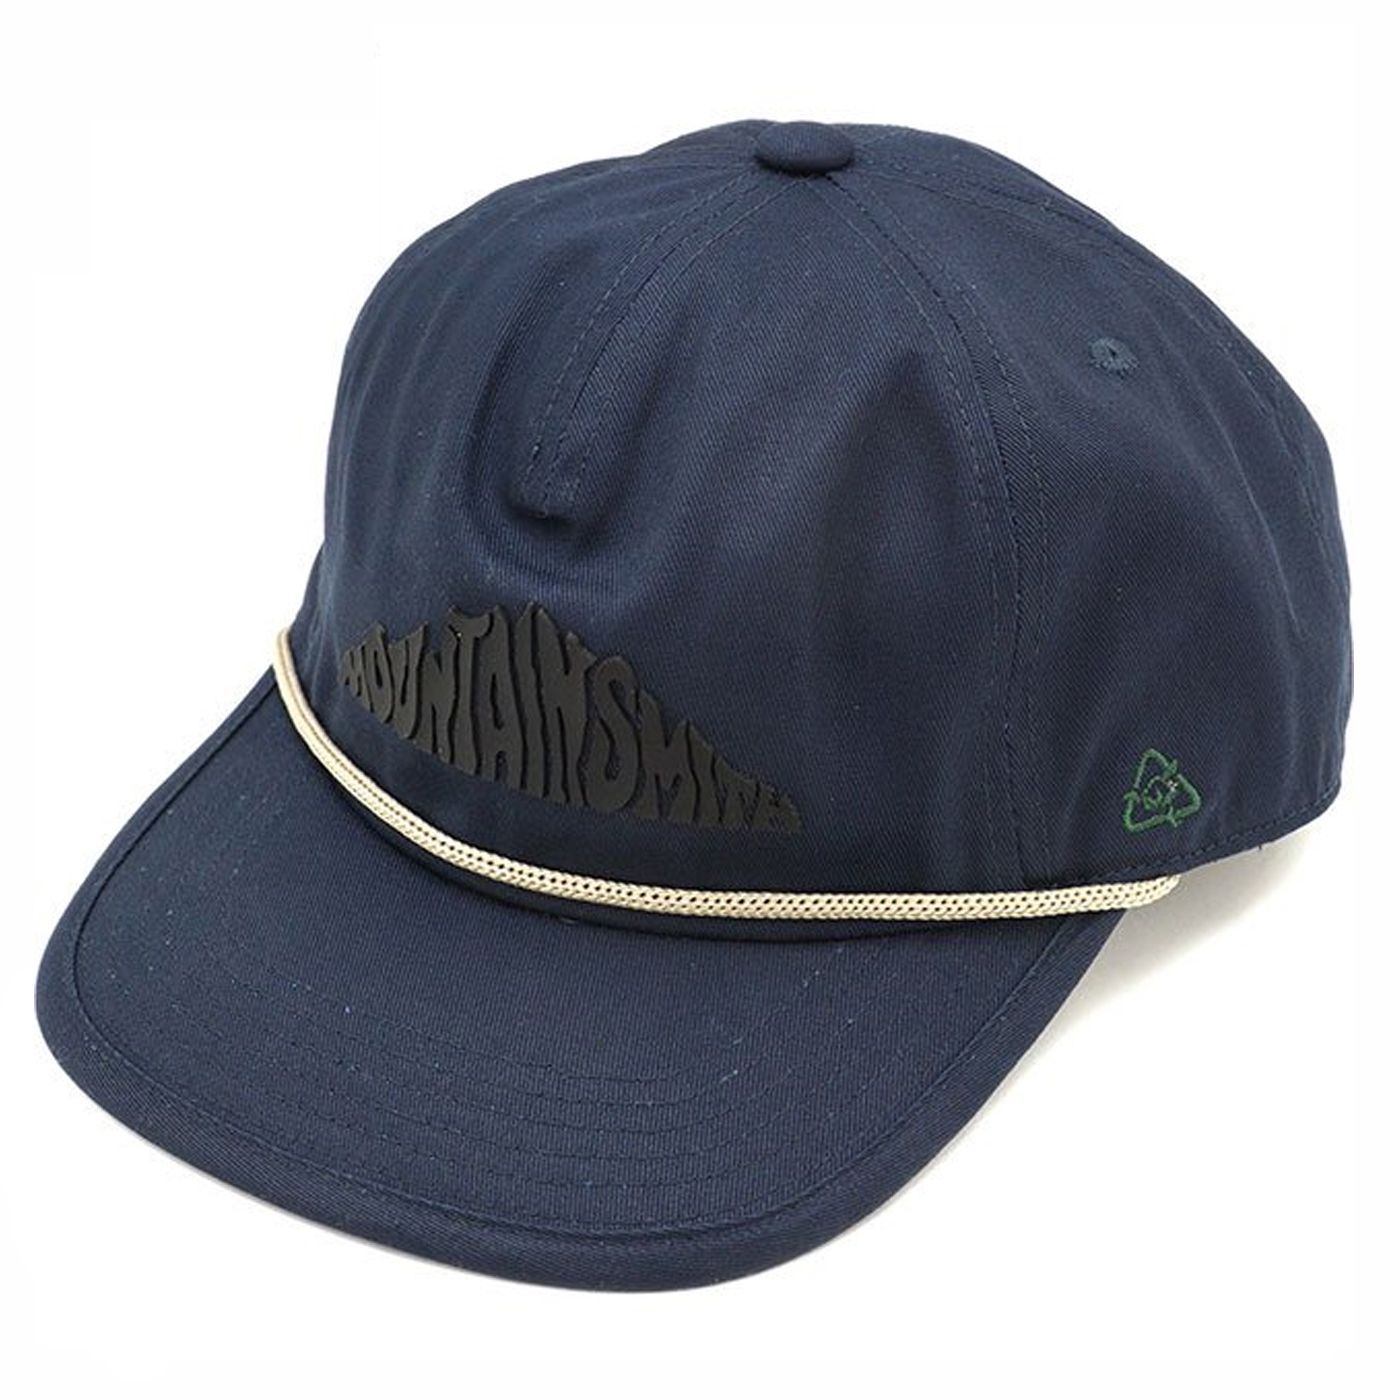 product: MS RECYCLED COTTON Golden CAP / color: NAVY 1